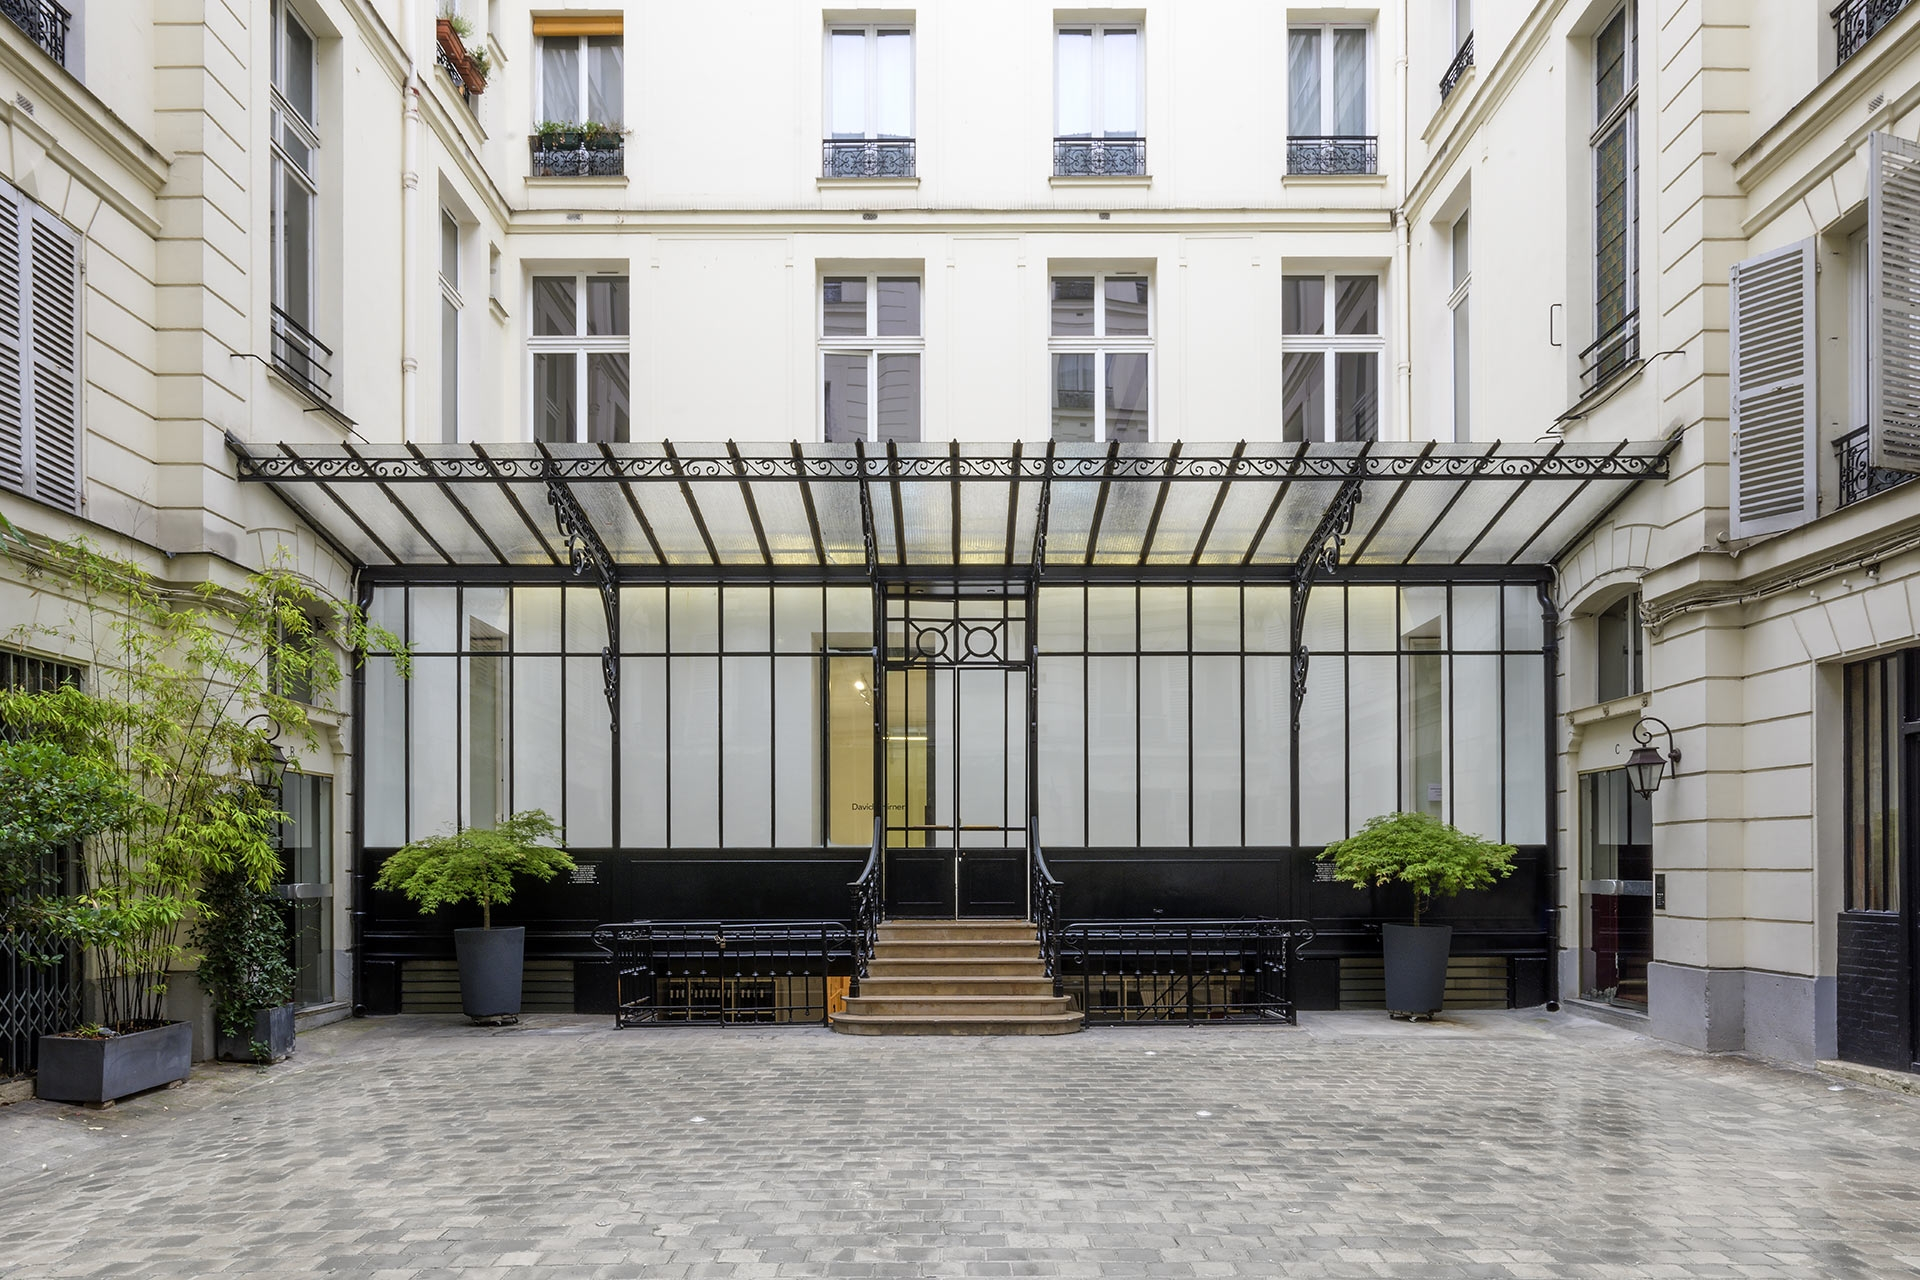 A photograph by Charles Duprat of the exterior of 108, rue Vieille du Temple, David Zwirner's Paris location.